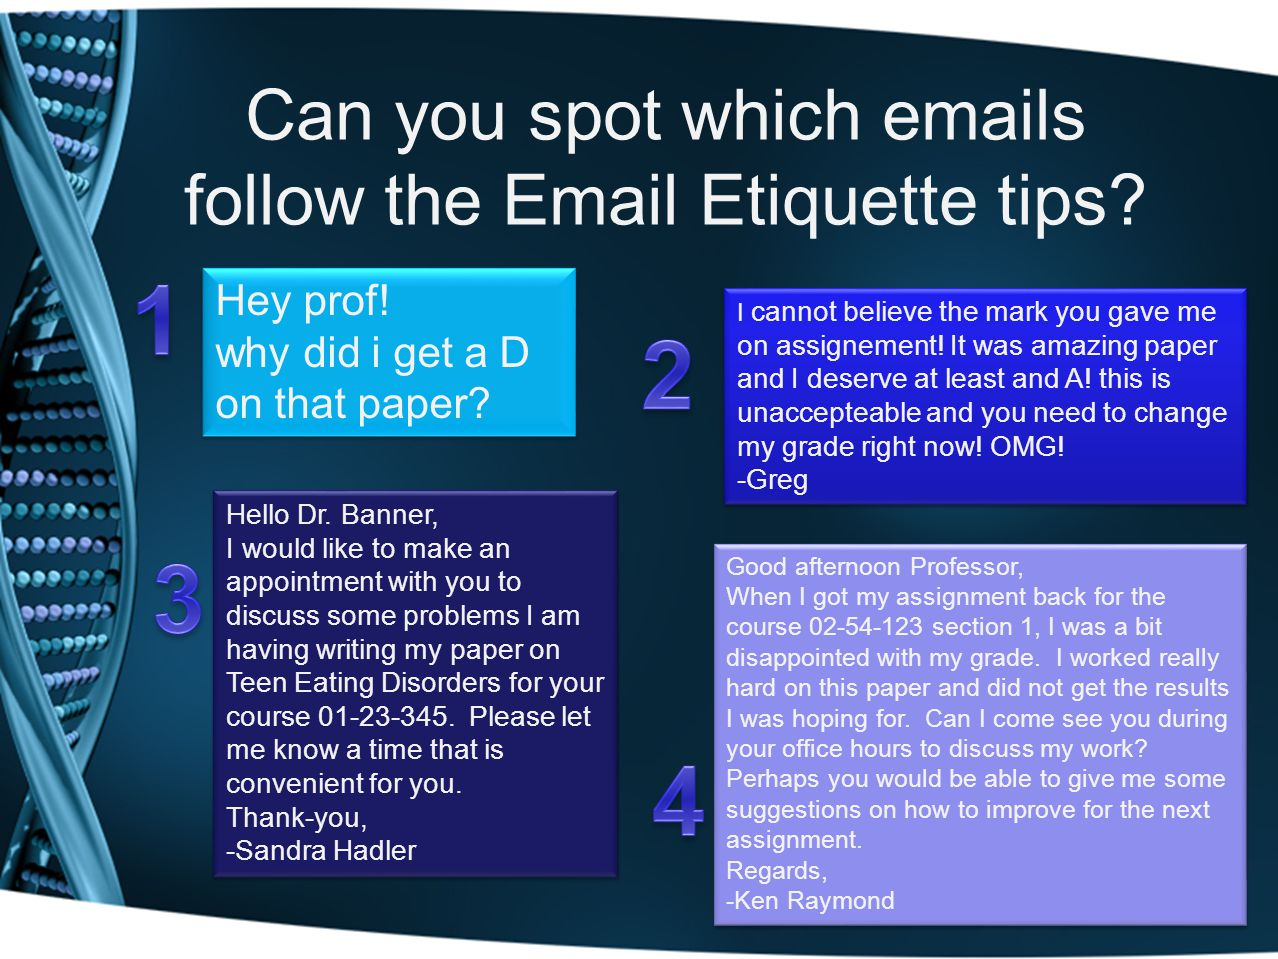 Can you spot which emails follow the Email Etiquette tips? Hey prof! why did i get a D on that paper? Hello Dr. Banner, I would like to make an appoin